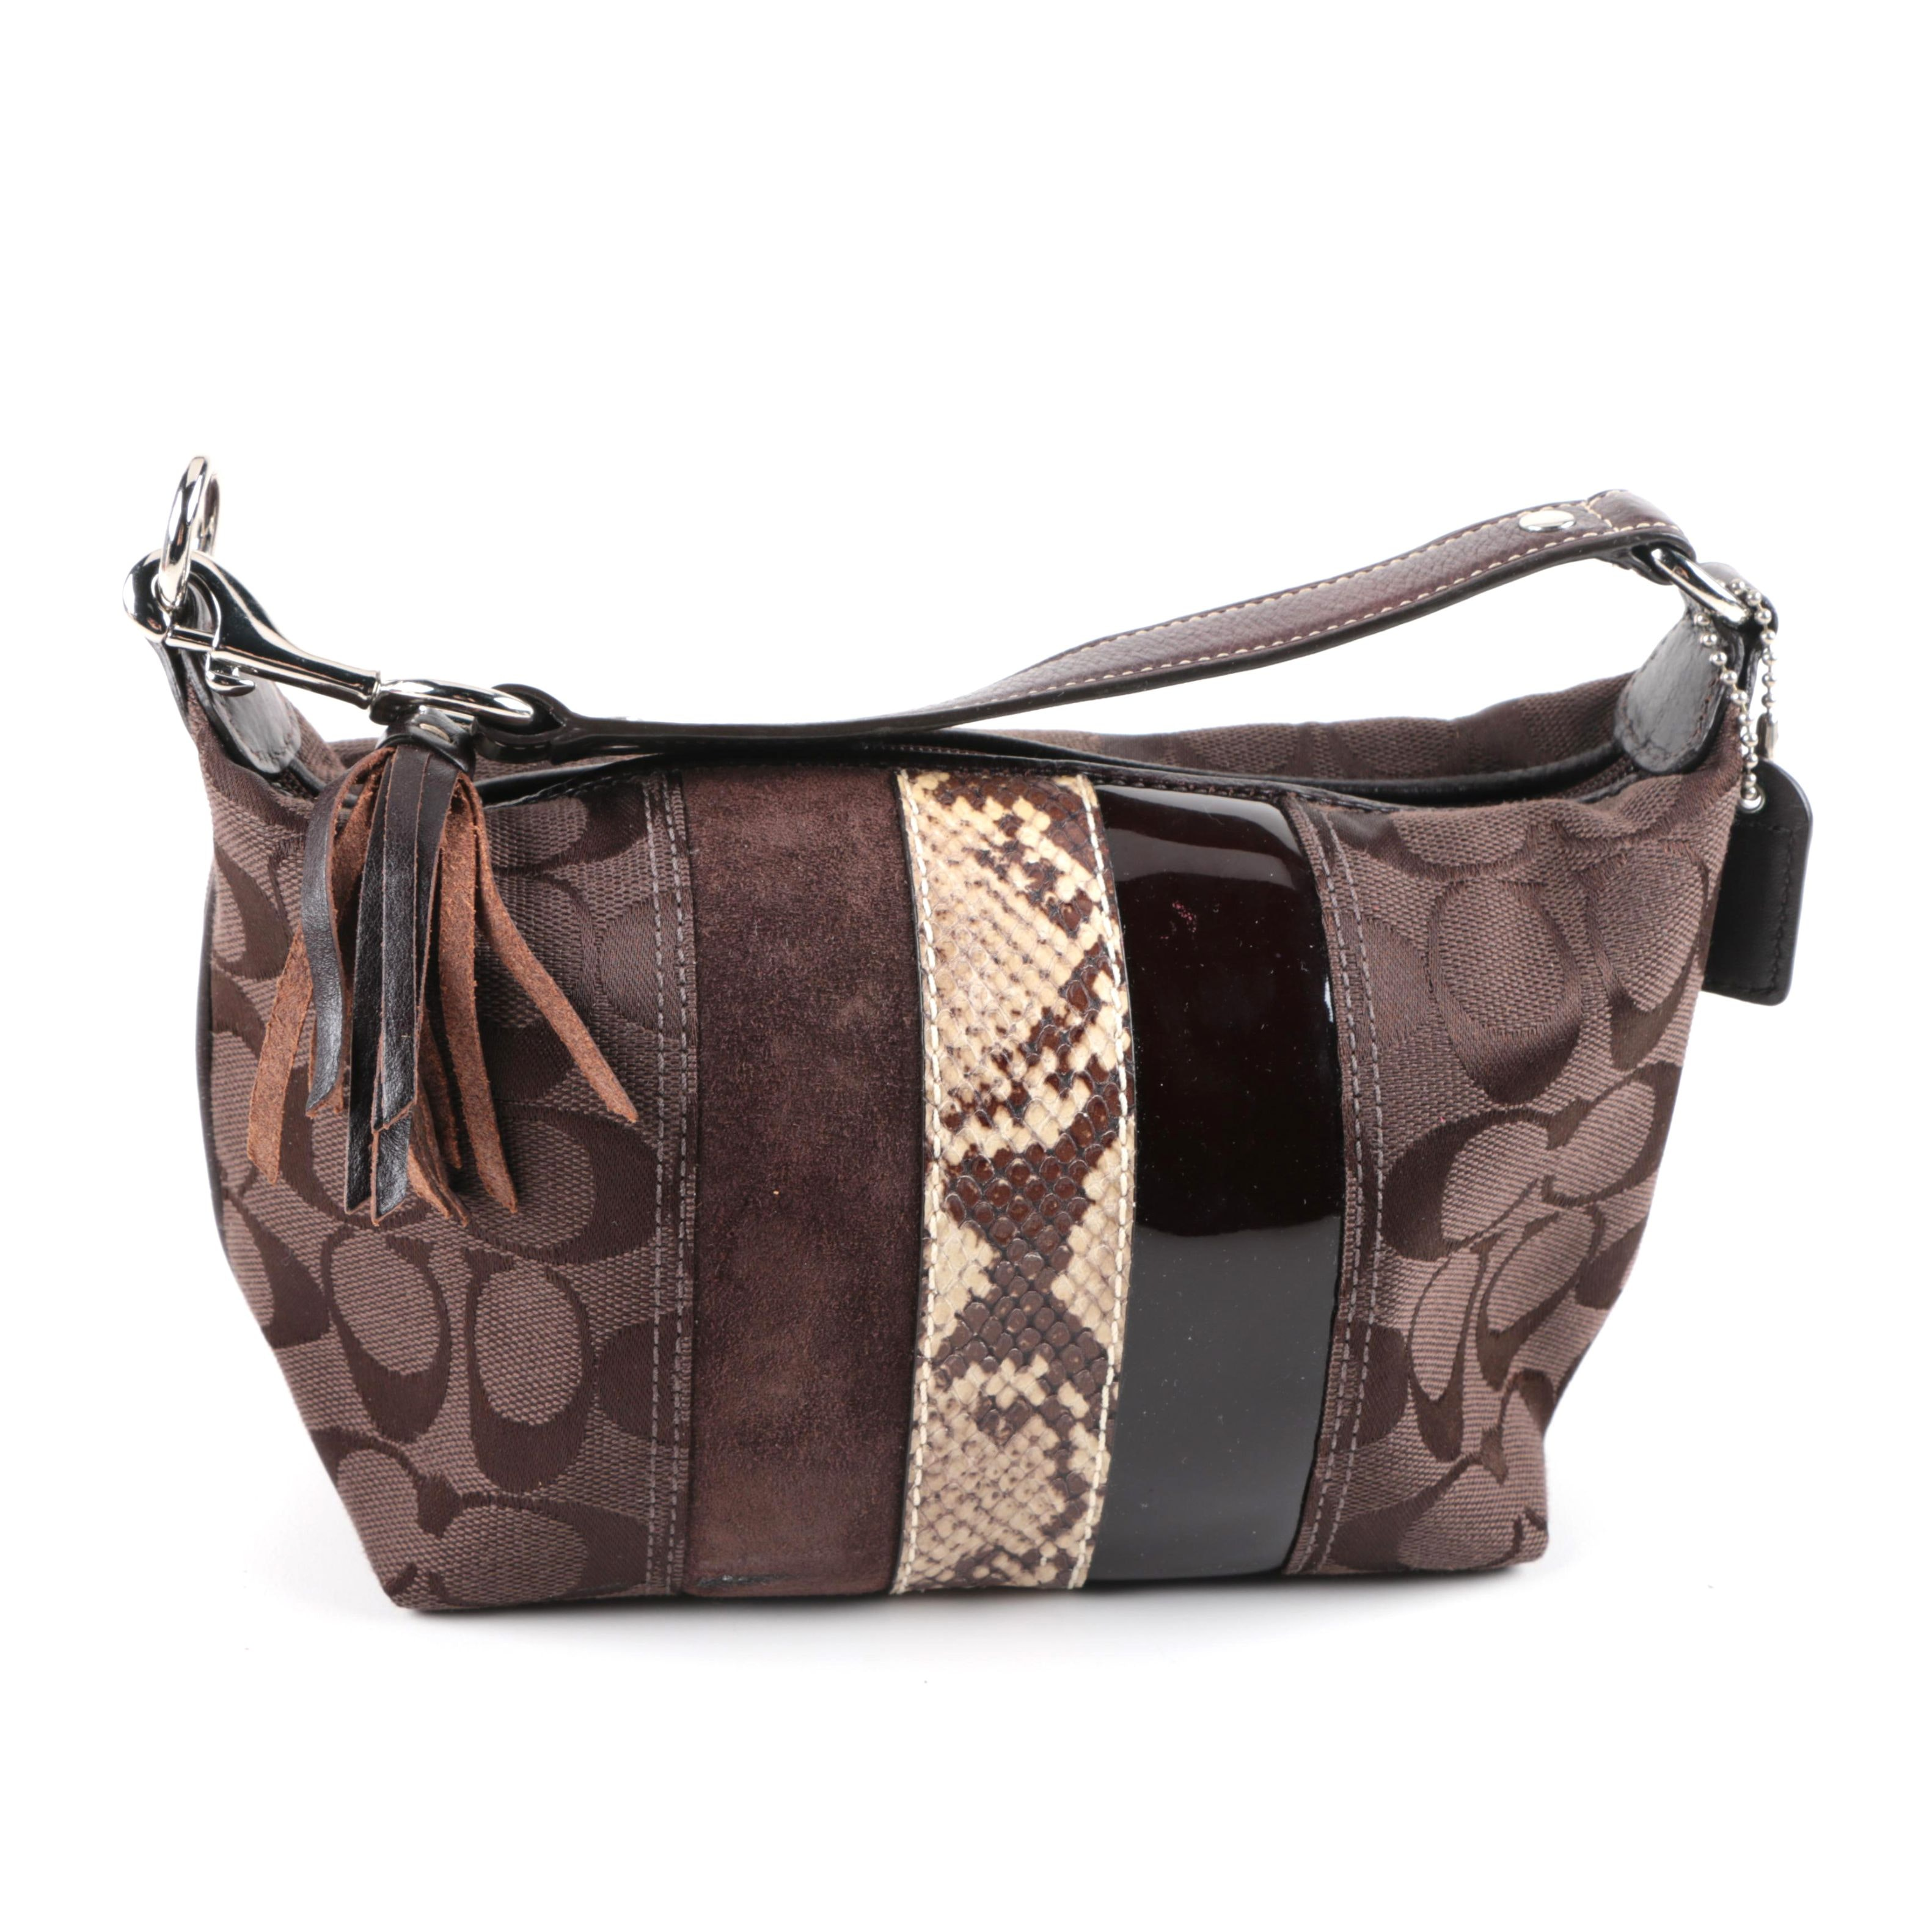 Coach Signature Canvas, Suede and Leather Handbag with Embossed Snakeskin Print